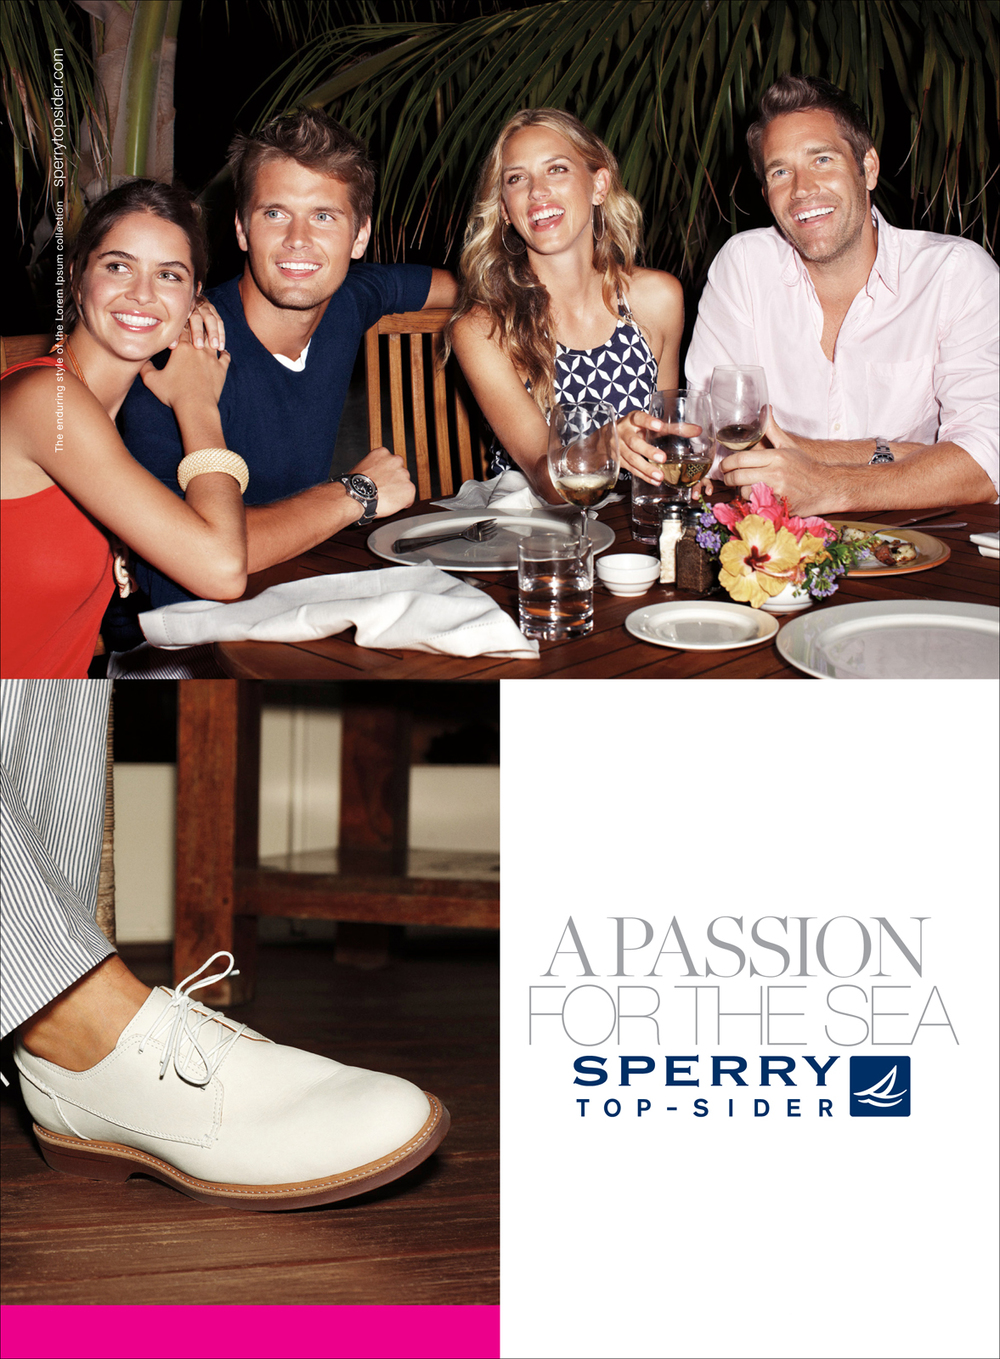 SC_ADVERTISING_SPERRY_KEYS_SS_2010_03.jpg